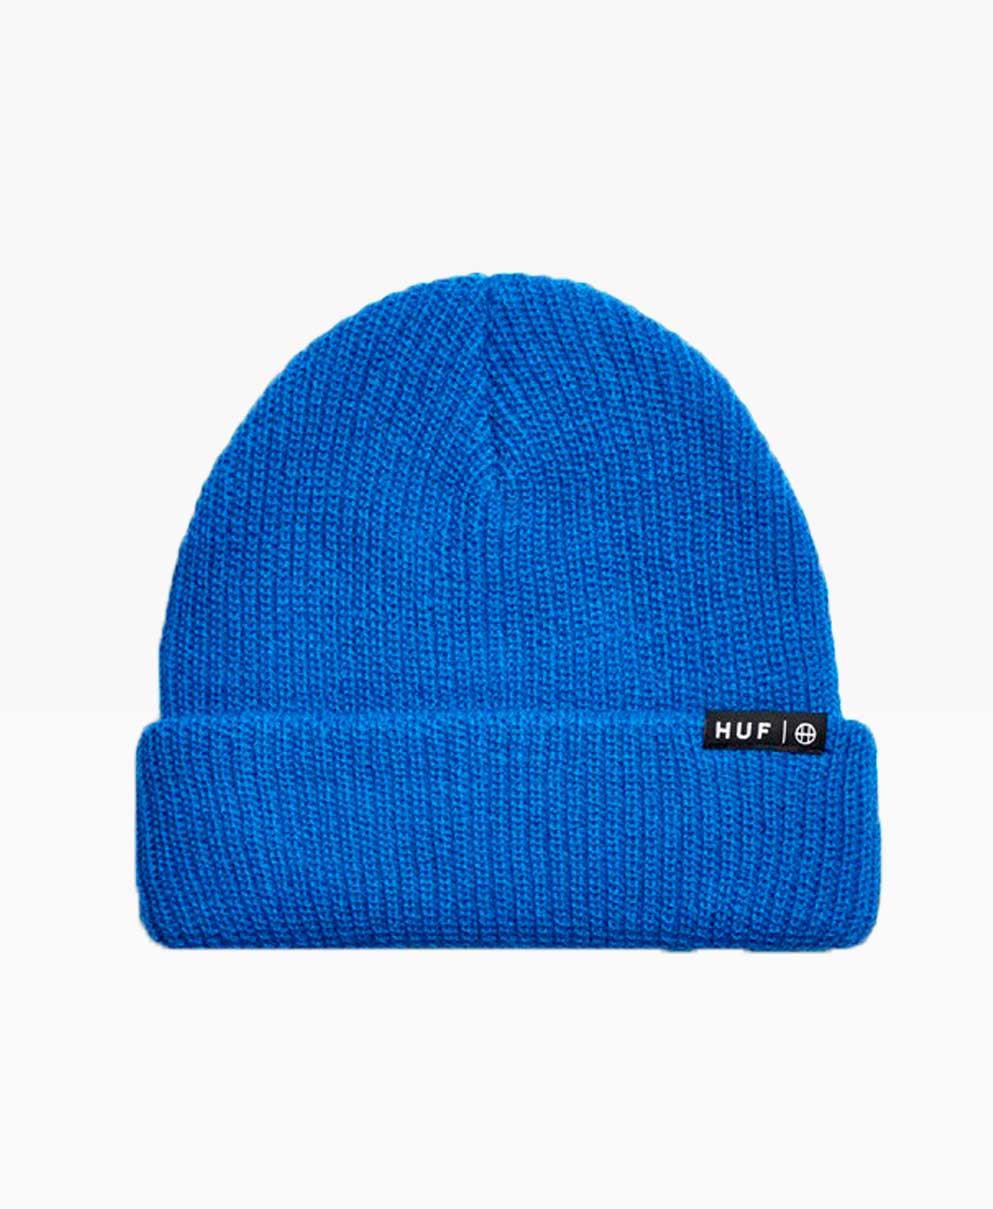 Huf Usual Beanie Blue Front